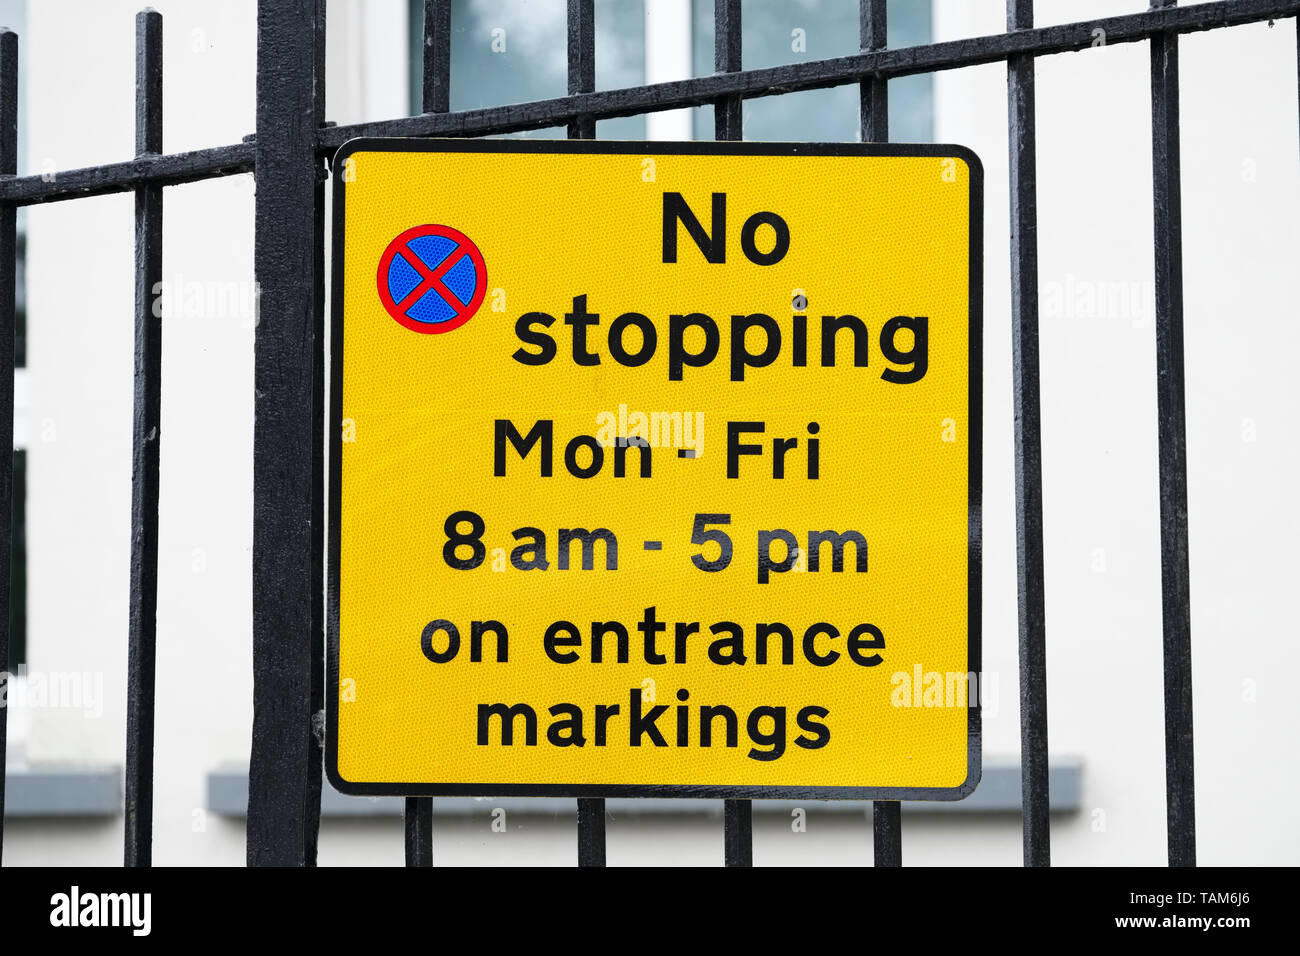 No stopping Monday to Friday on entrance school markings - Stock Image